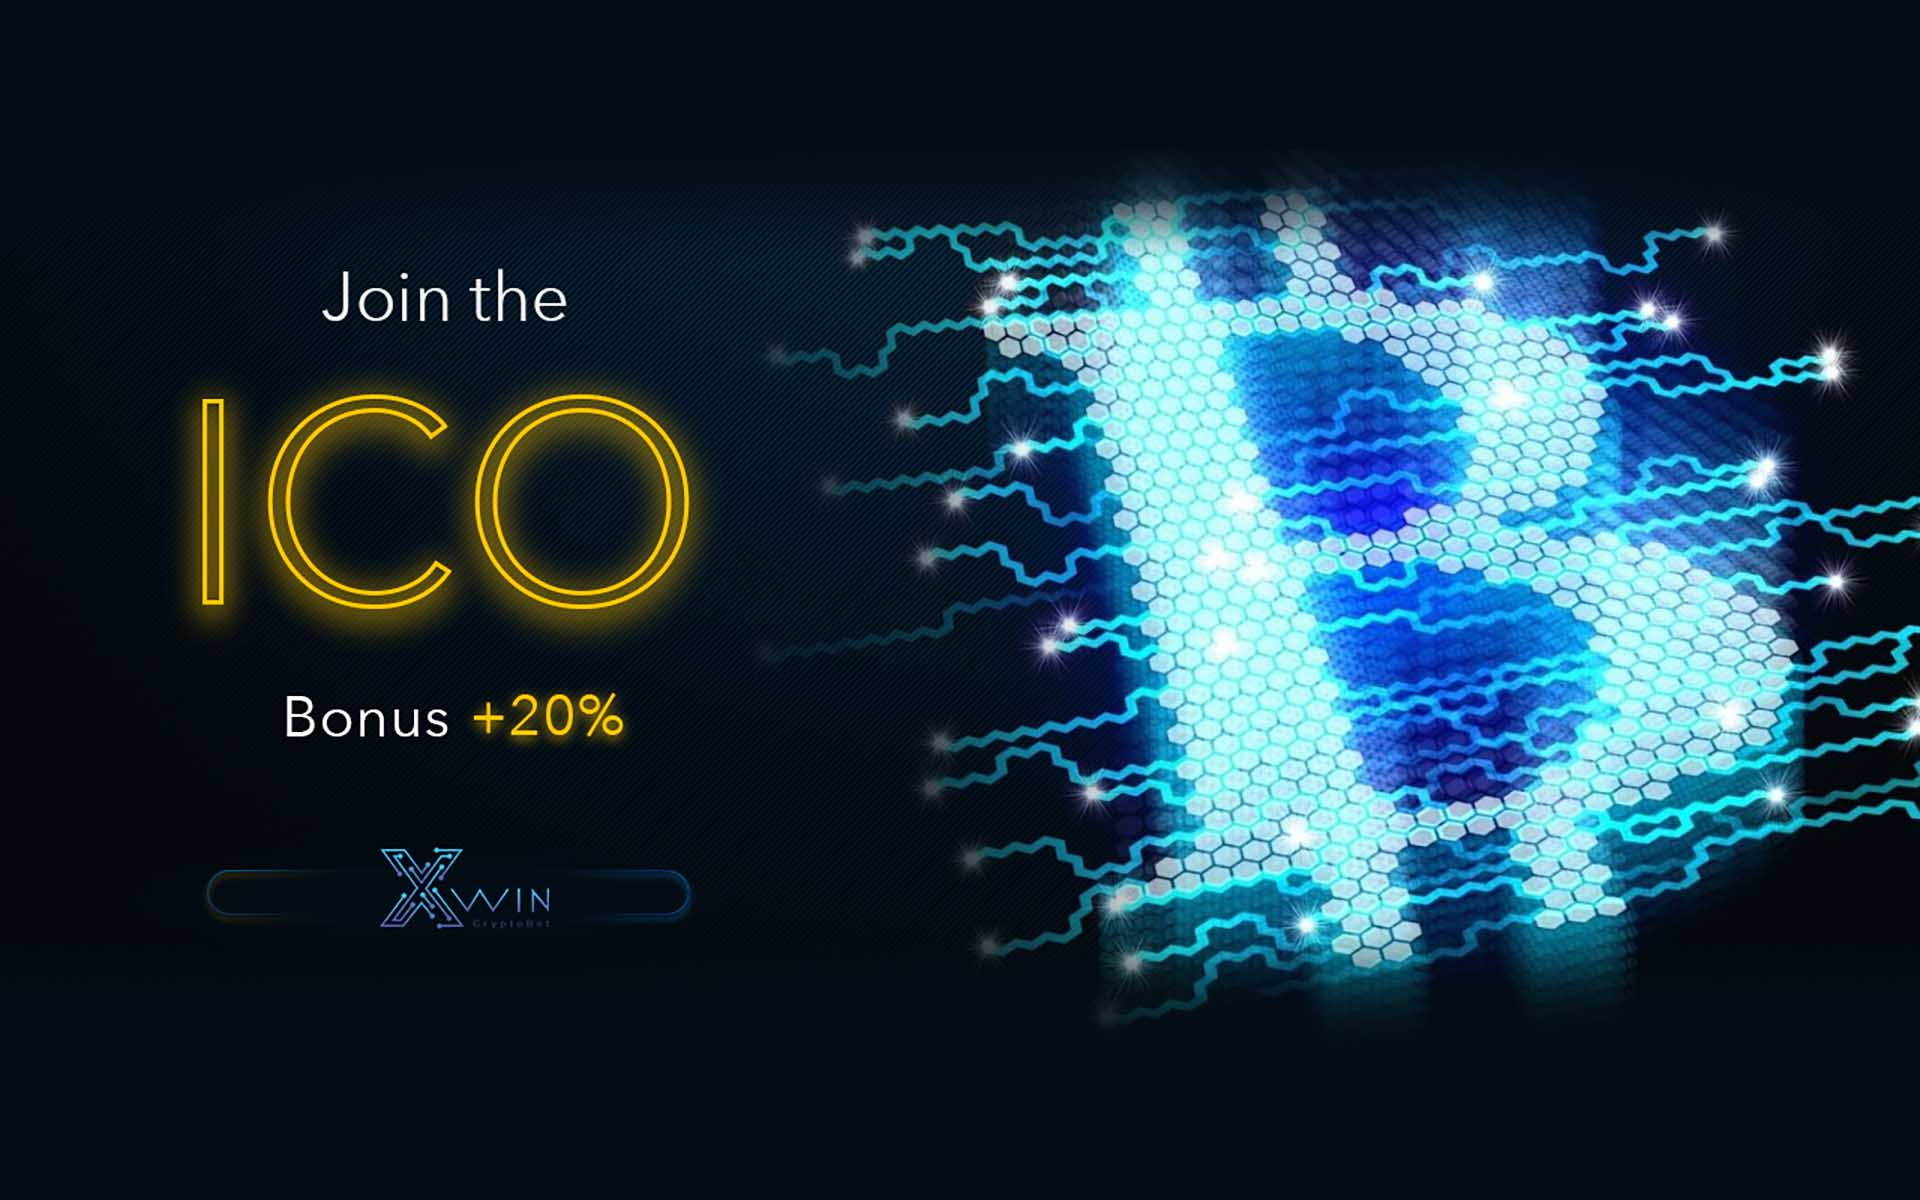 The Right ICO Could Be the Best Way to Enrich Yourself